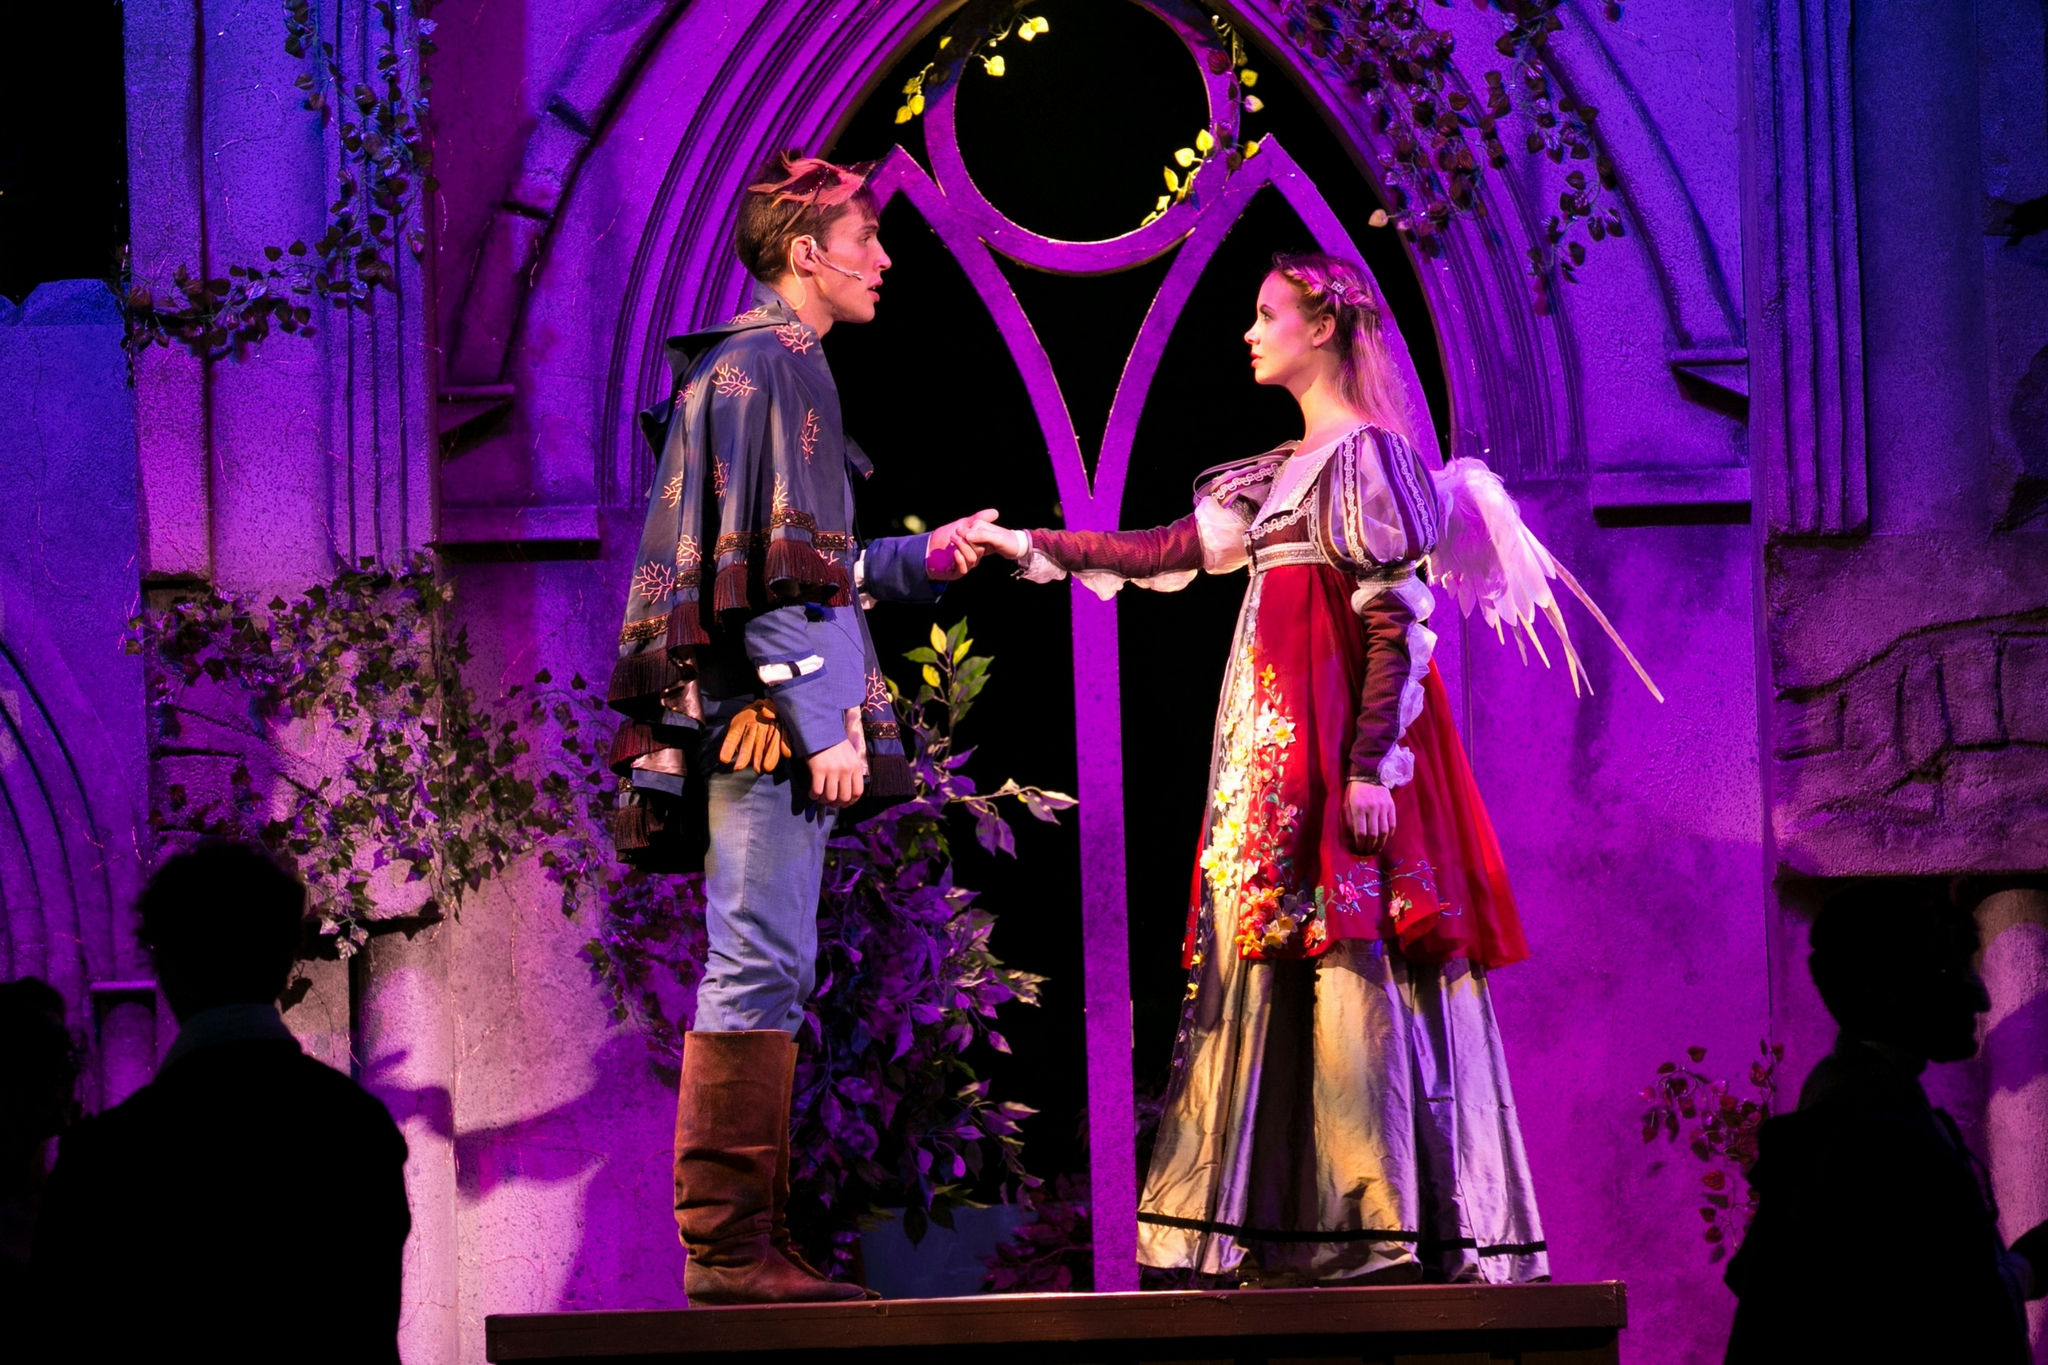 John Zdrojeski (Romeo) and Gracyn Mix (Juliet) in Romeo & Juliet, Shakespeare on the Common 2017-Photo by Evgenia Eliseeva